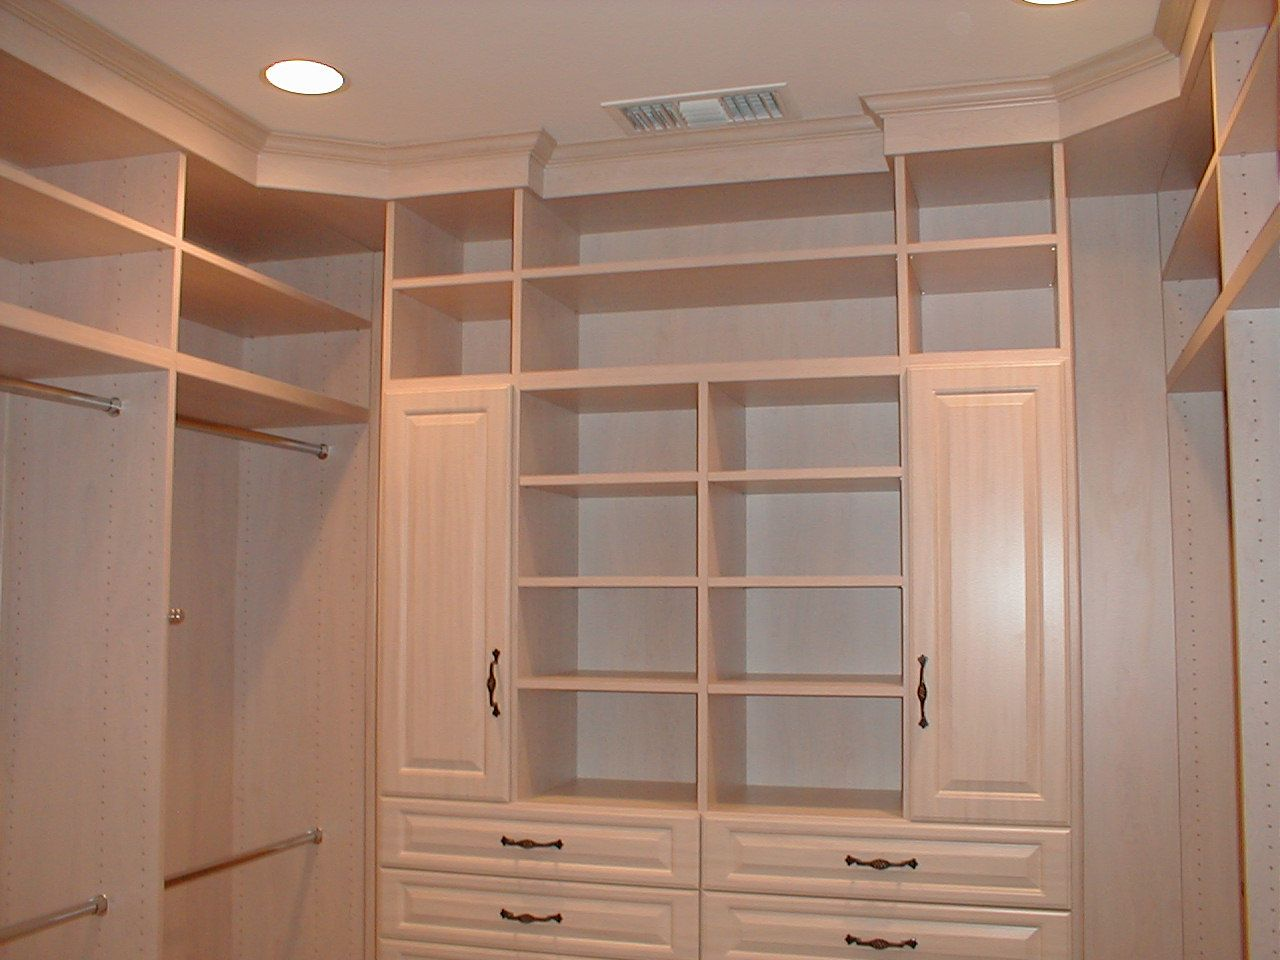 Charming white wardrobe storage organizations walk in Closet layout ideas